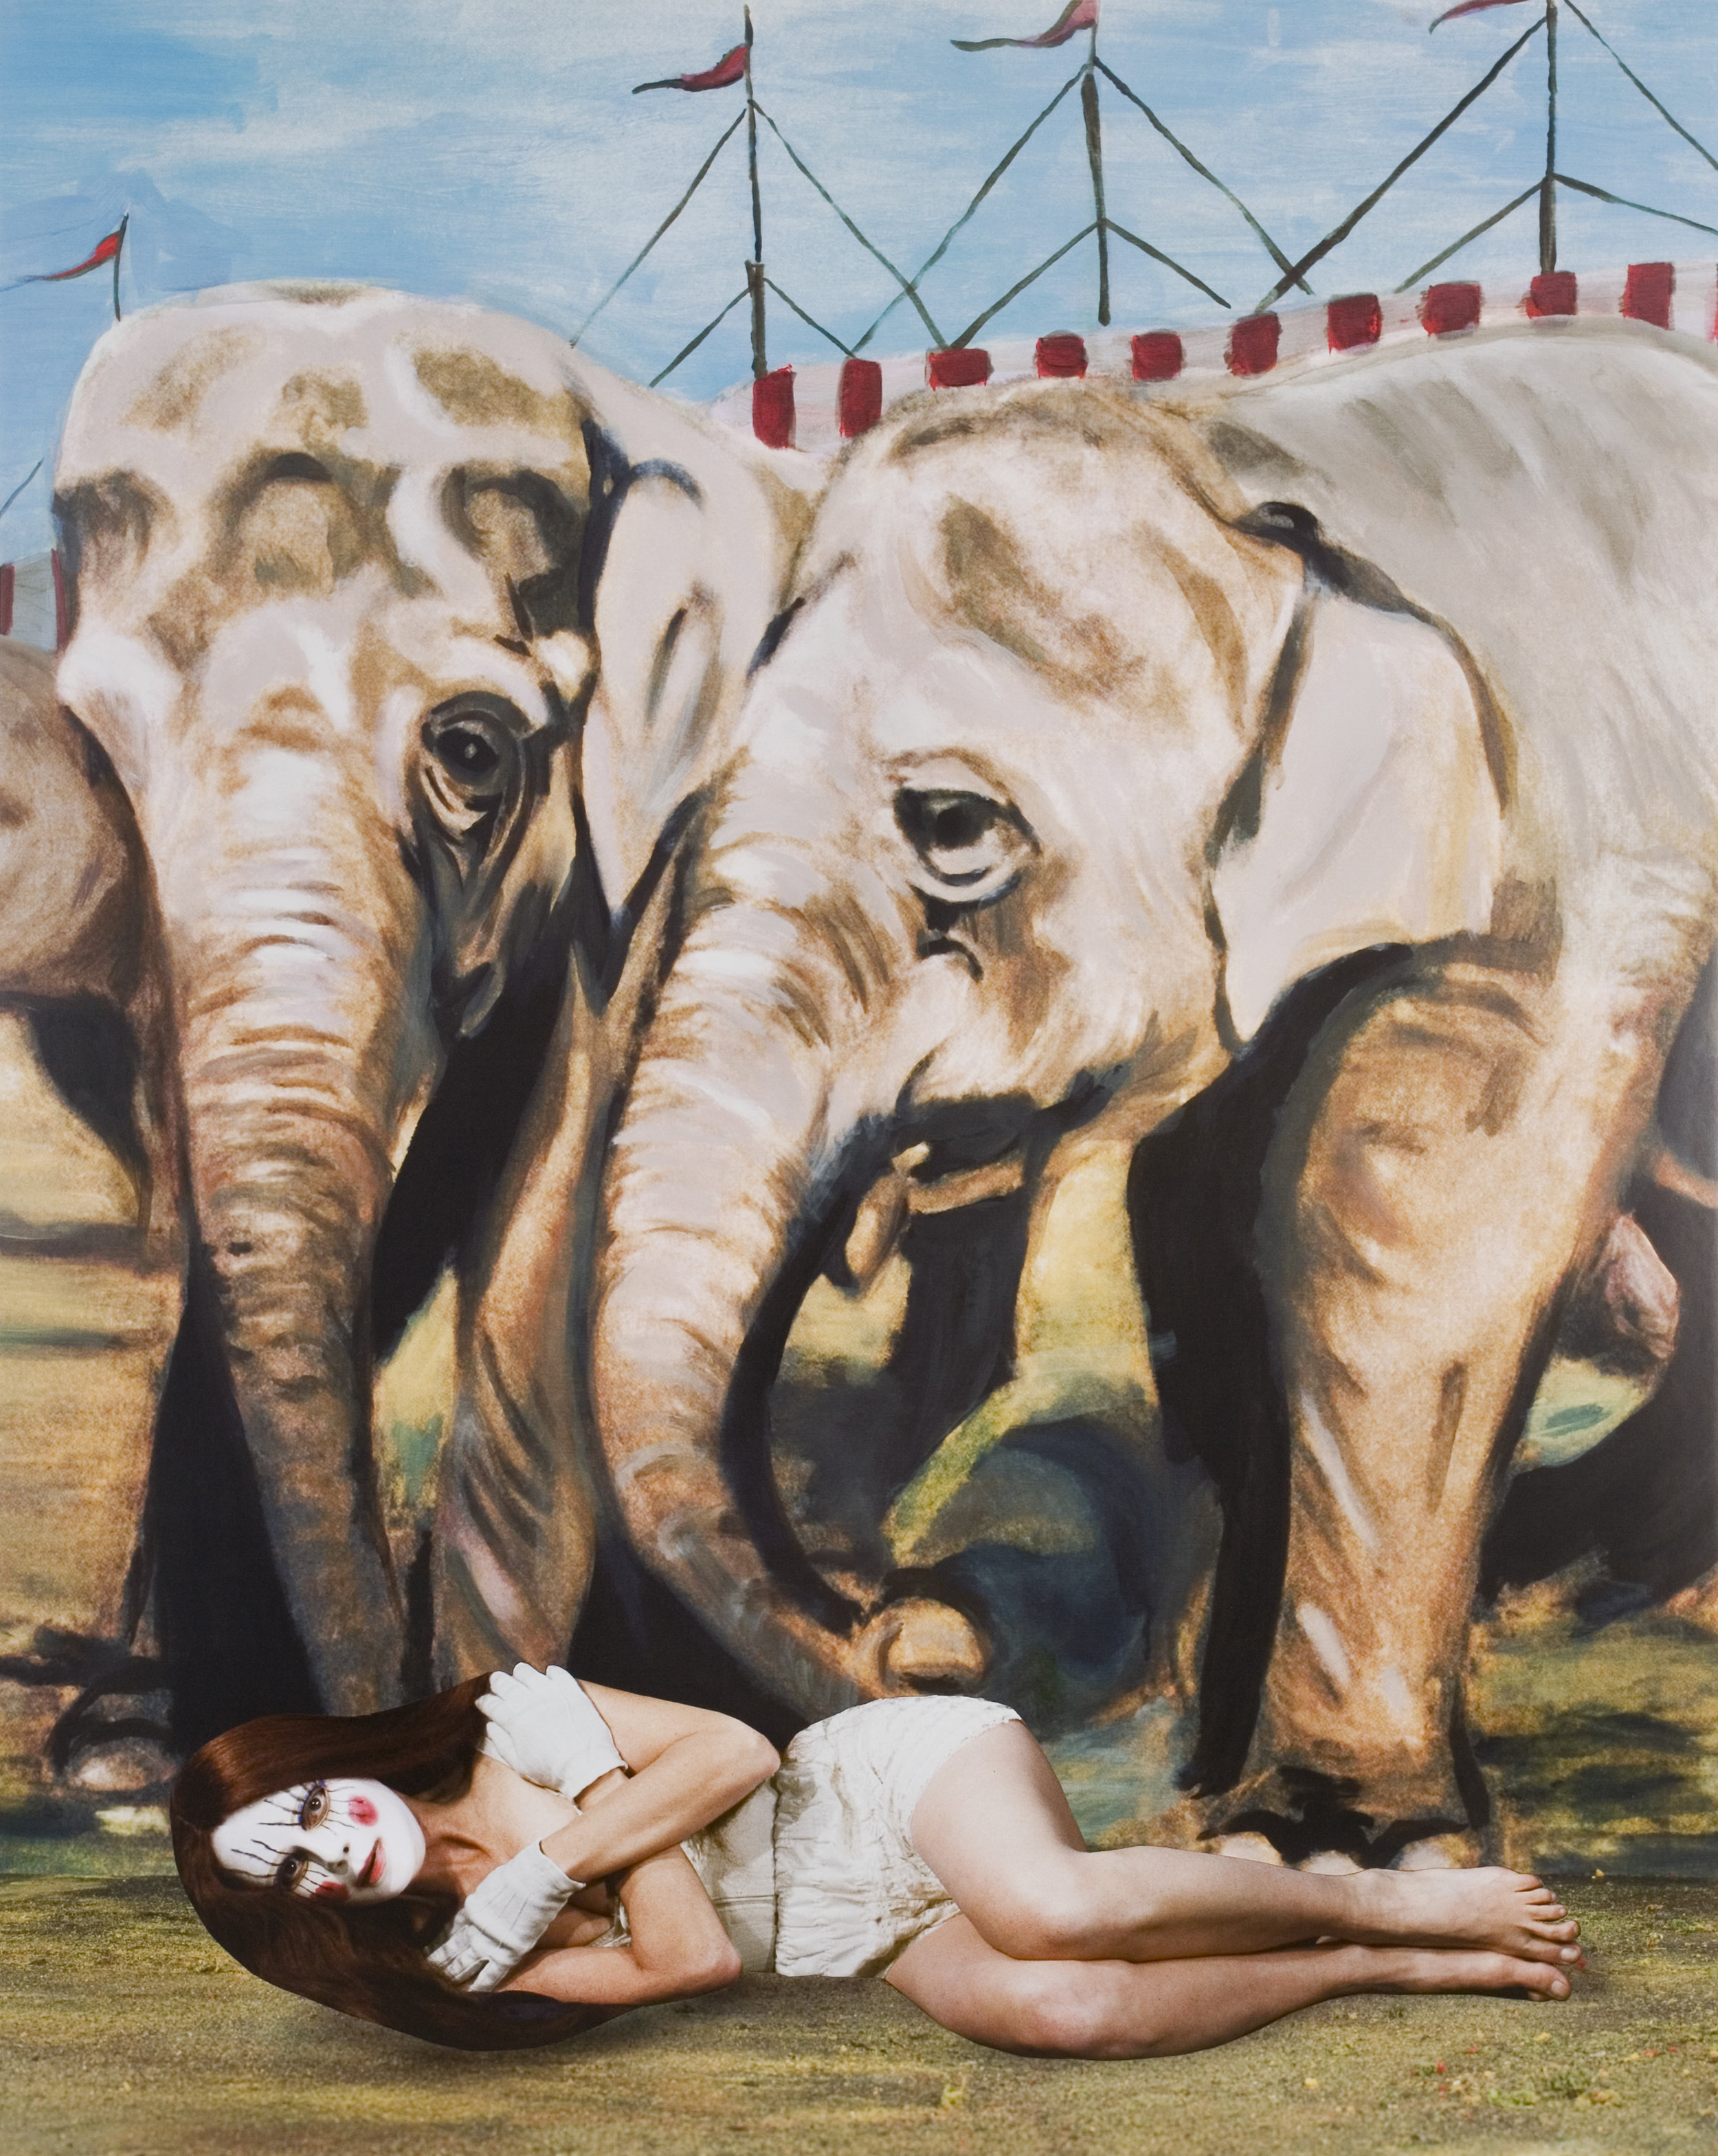 Melancholy Elephants, 2008 collages on archival pigment print mounted on Sintra 129 x 104 cm - 50 13/16 x 40 15/16 inches (framed)